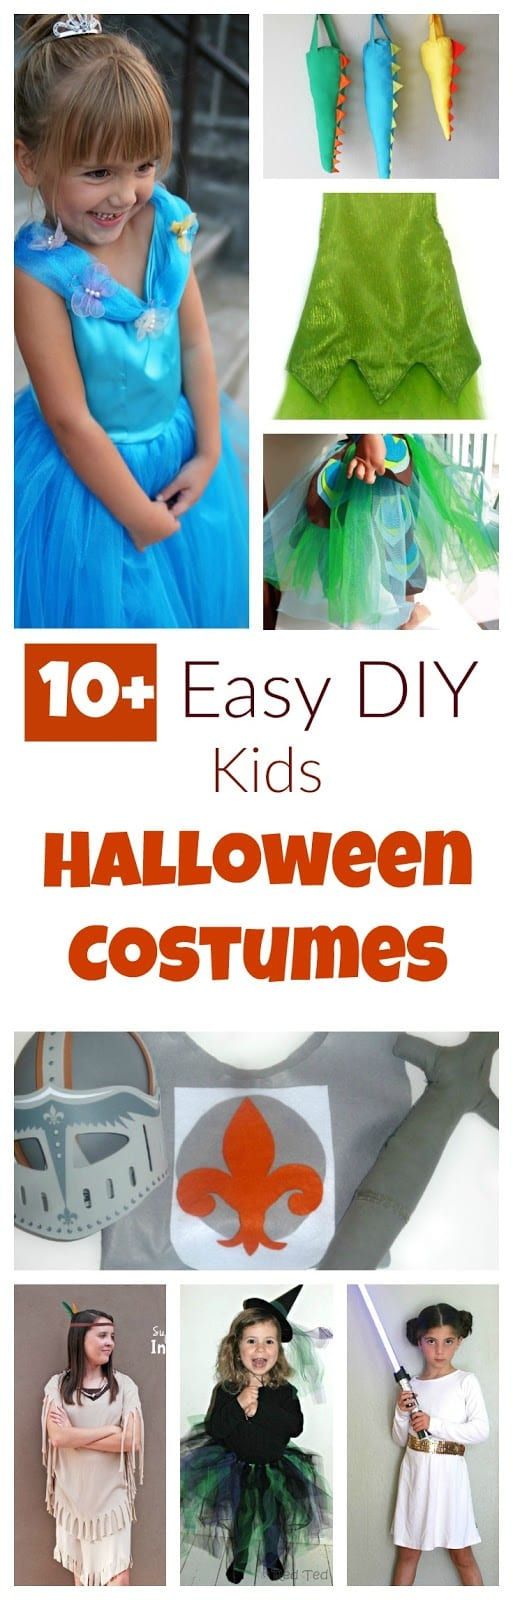 easy-diy-halloween-costumes-kids02-not-used